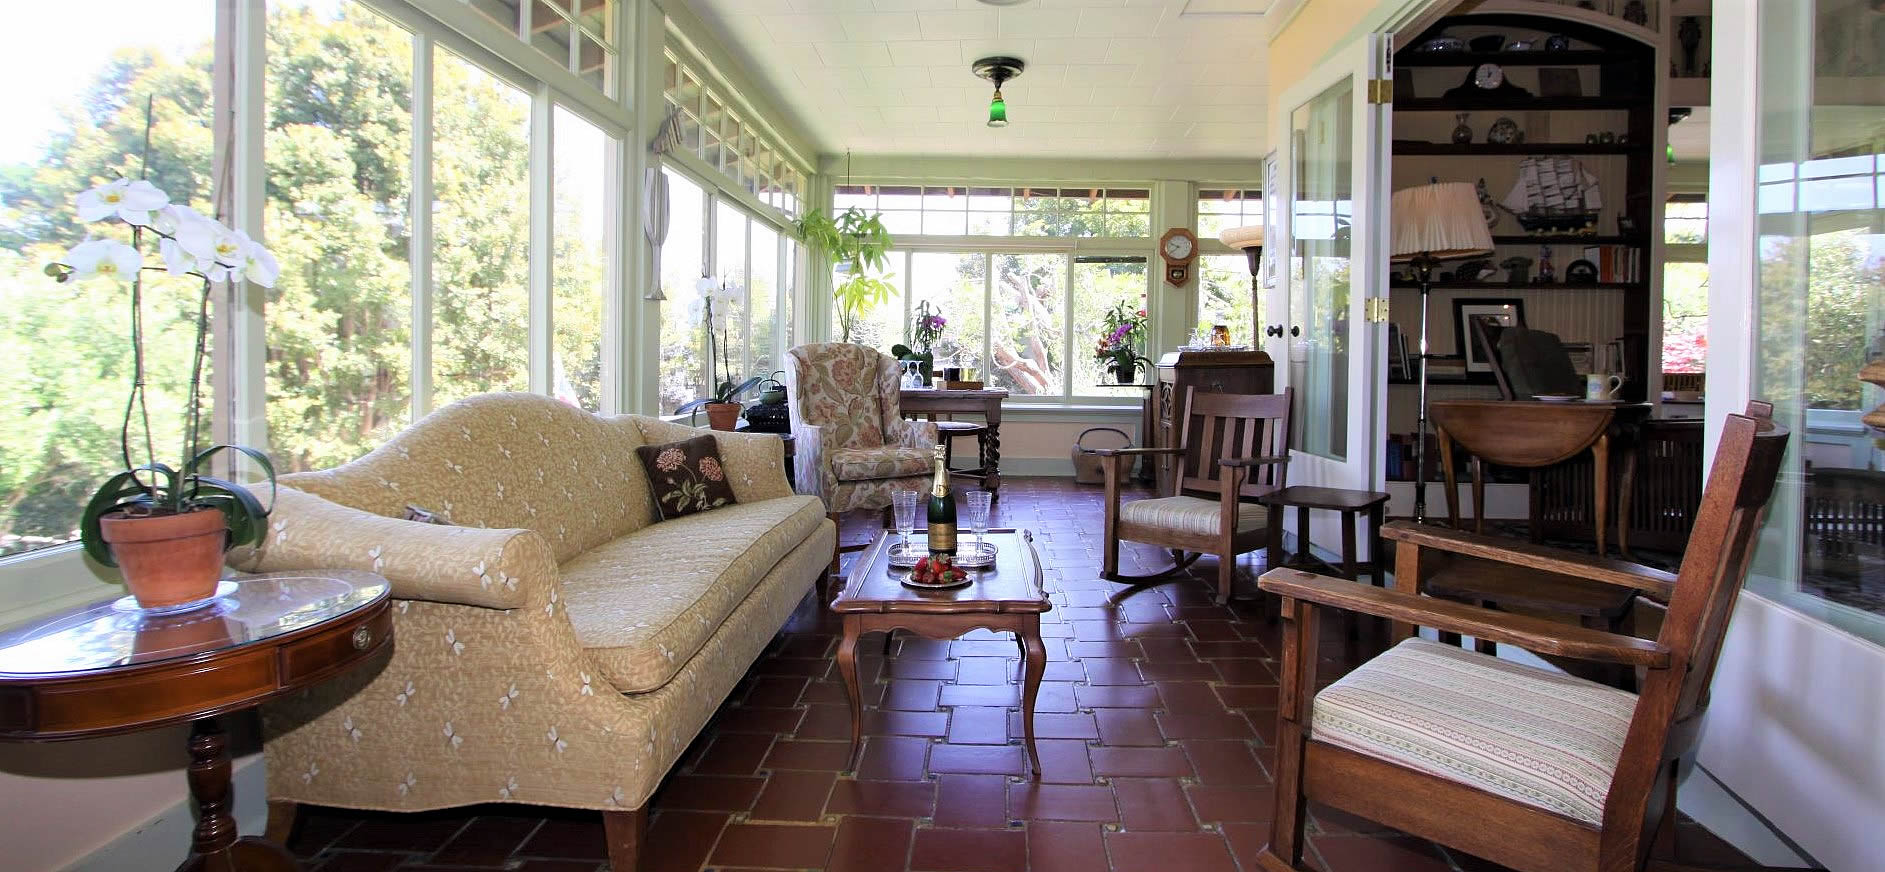 sun room at jabberwock inn monterey